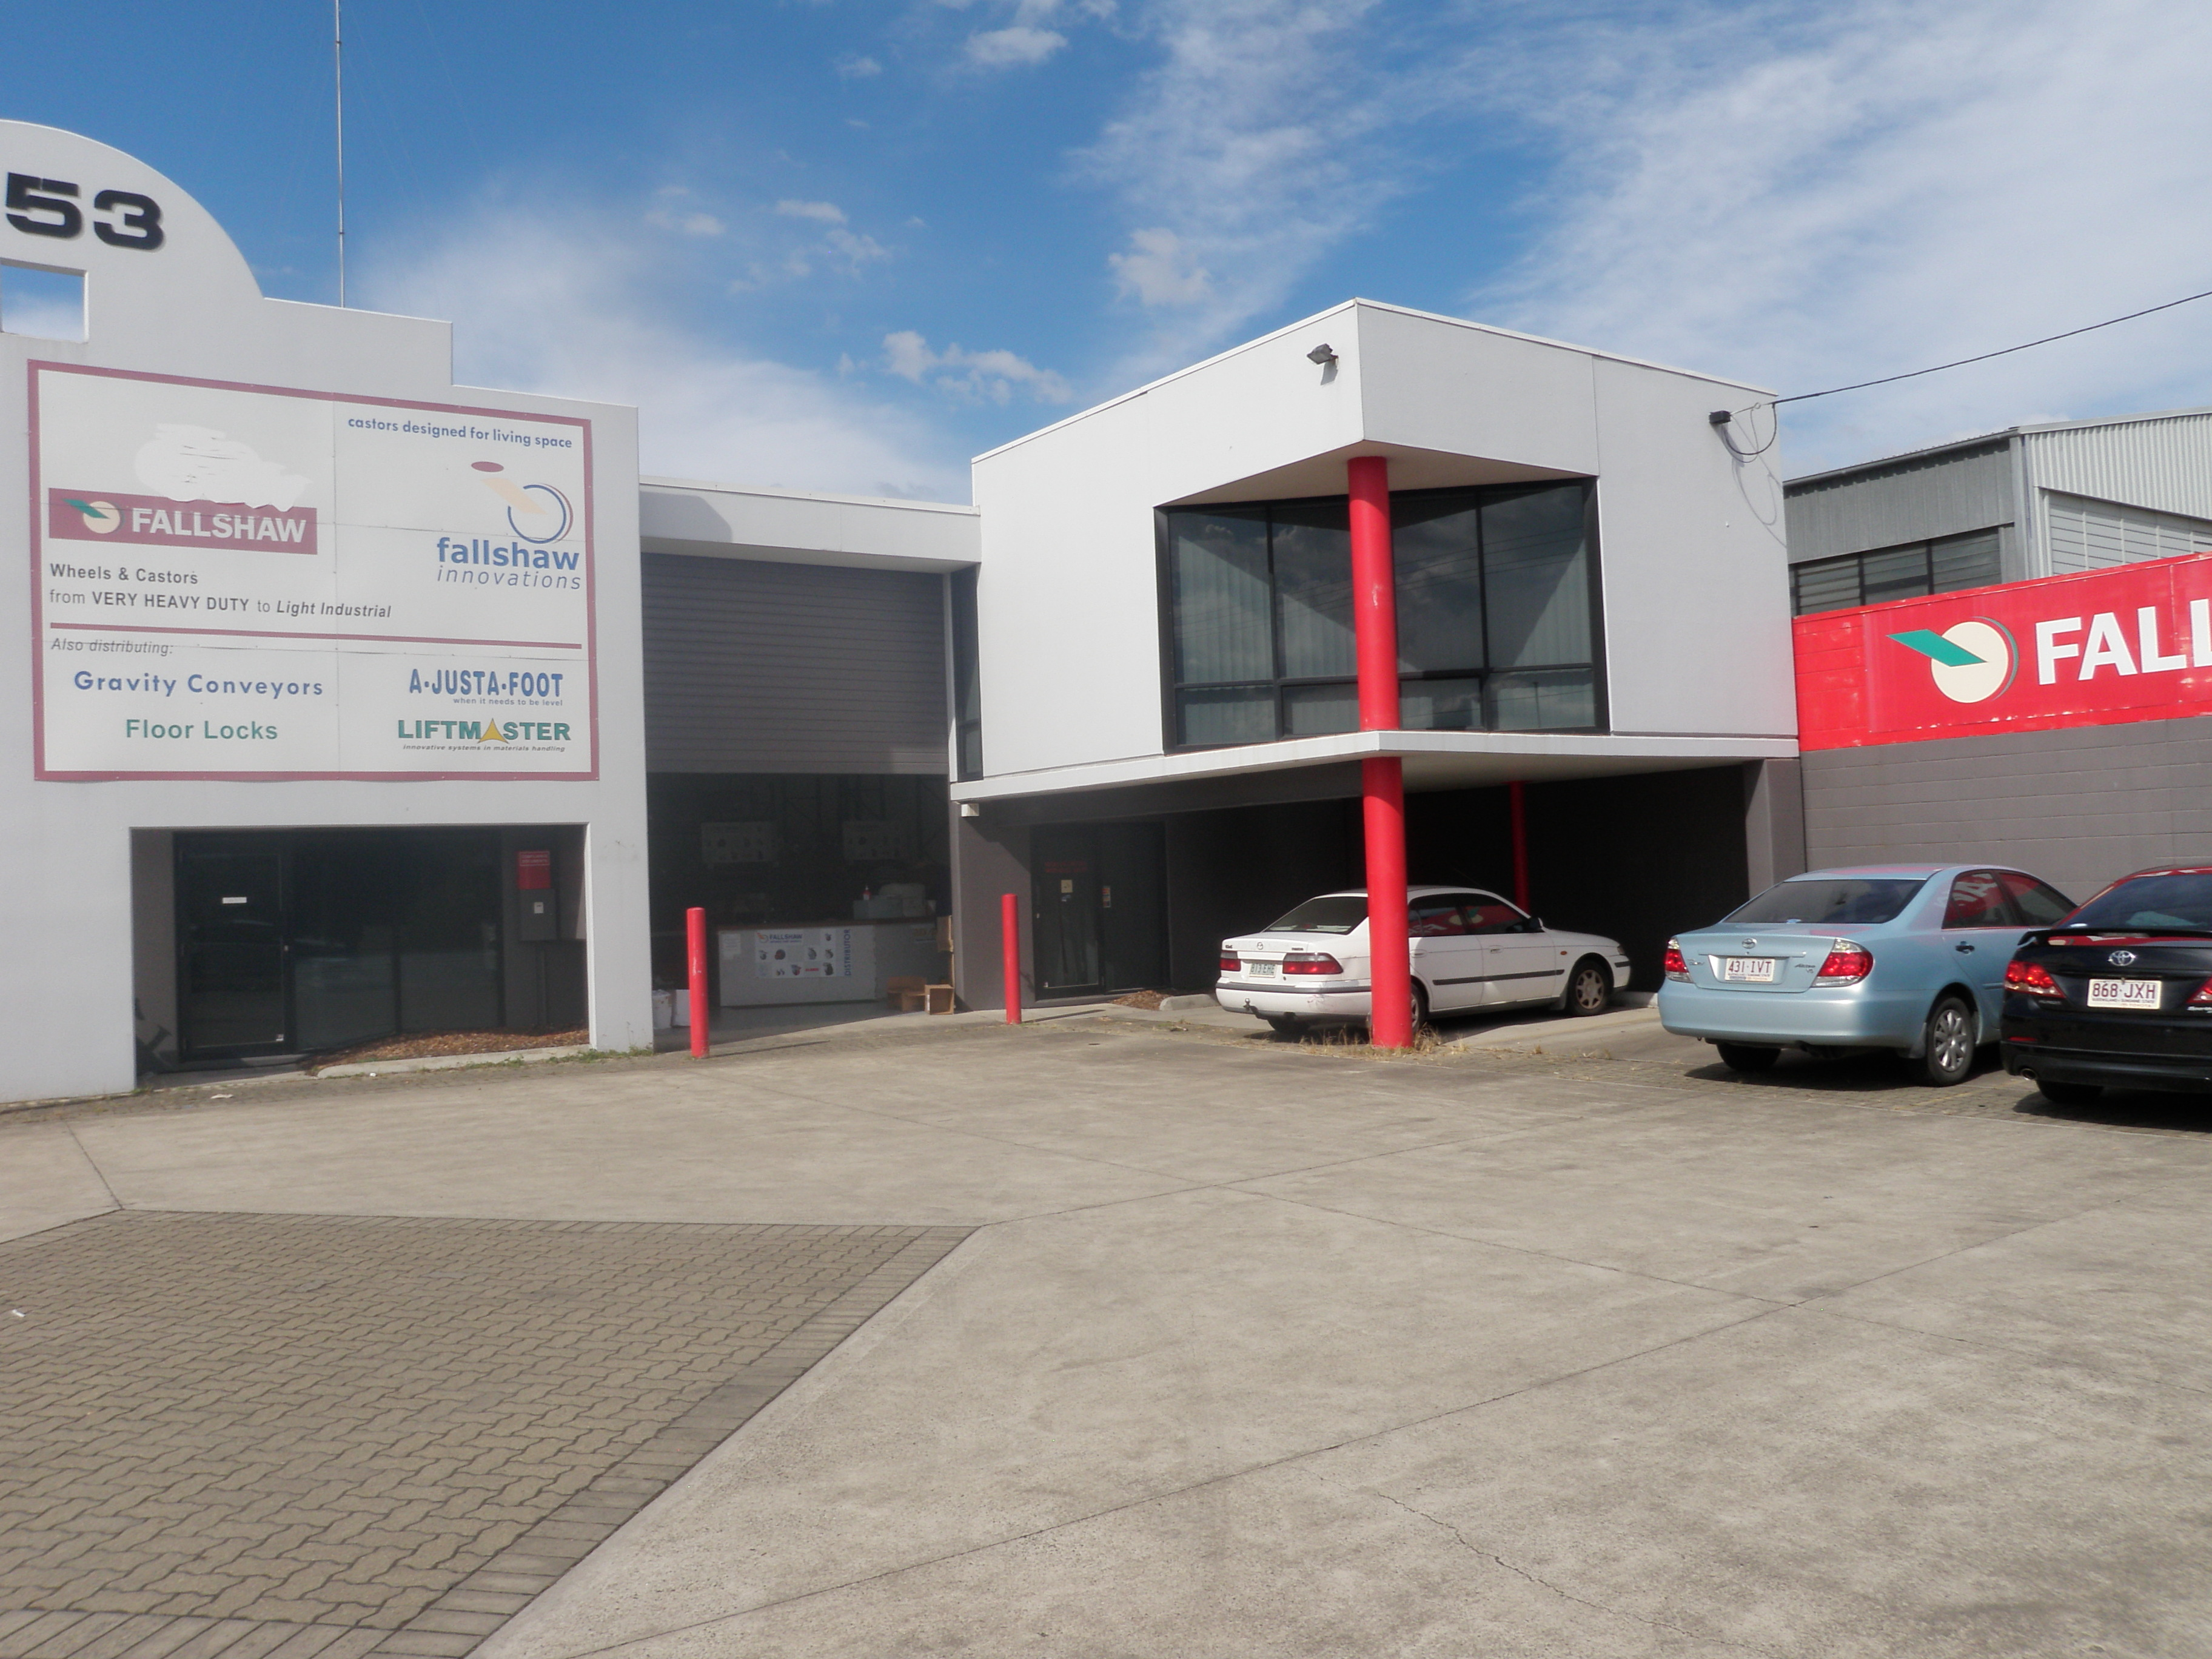 #B41726 Brisbane Northside Industrial Units Sold For $1.507 Million Recommended 8377 Air Conditioning Brisbane Northside pics with 3648x2736 px on helpvideos.info - Air Conditioners, Air Coolers and more